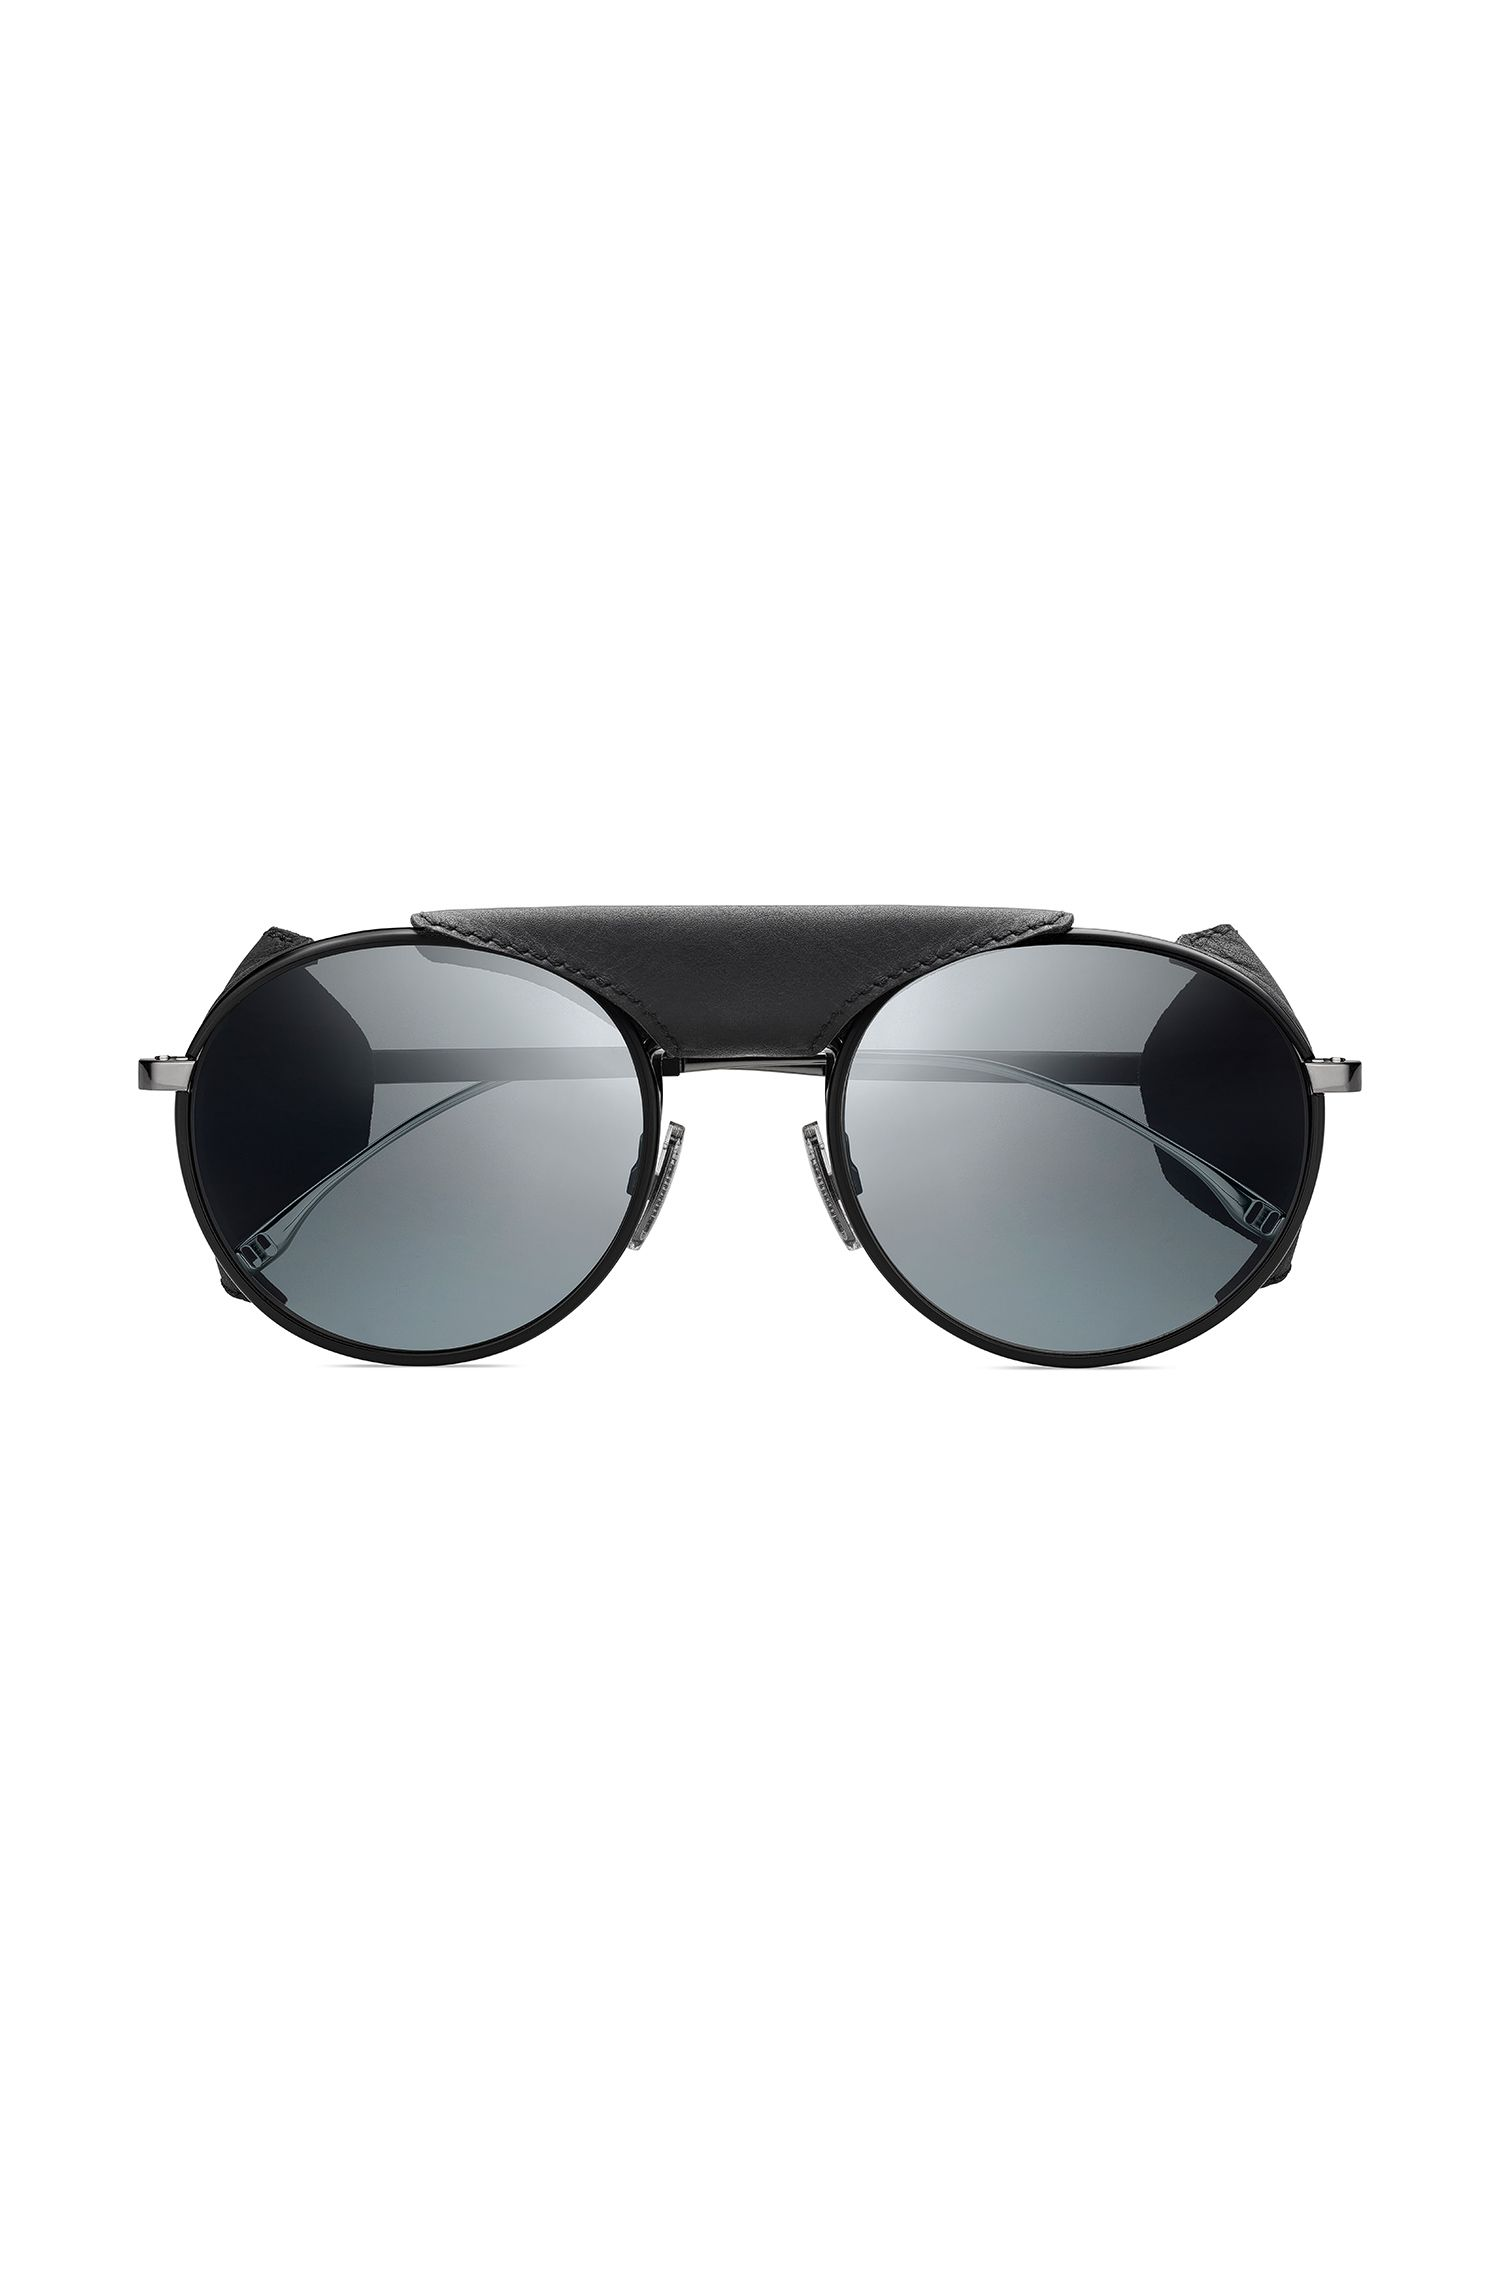 Limited Edition Mountain Traveler Sunglasses | BOSS 0886/N/S